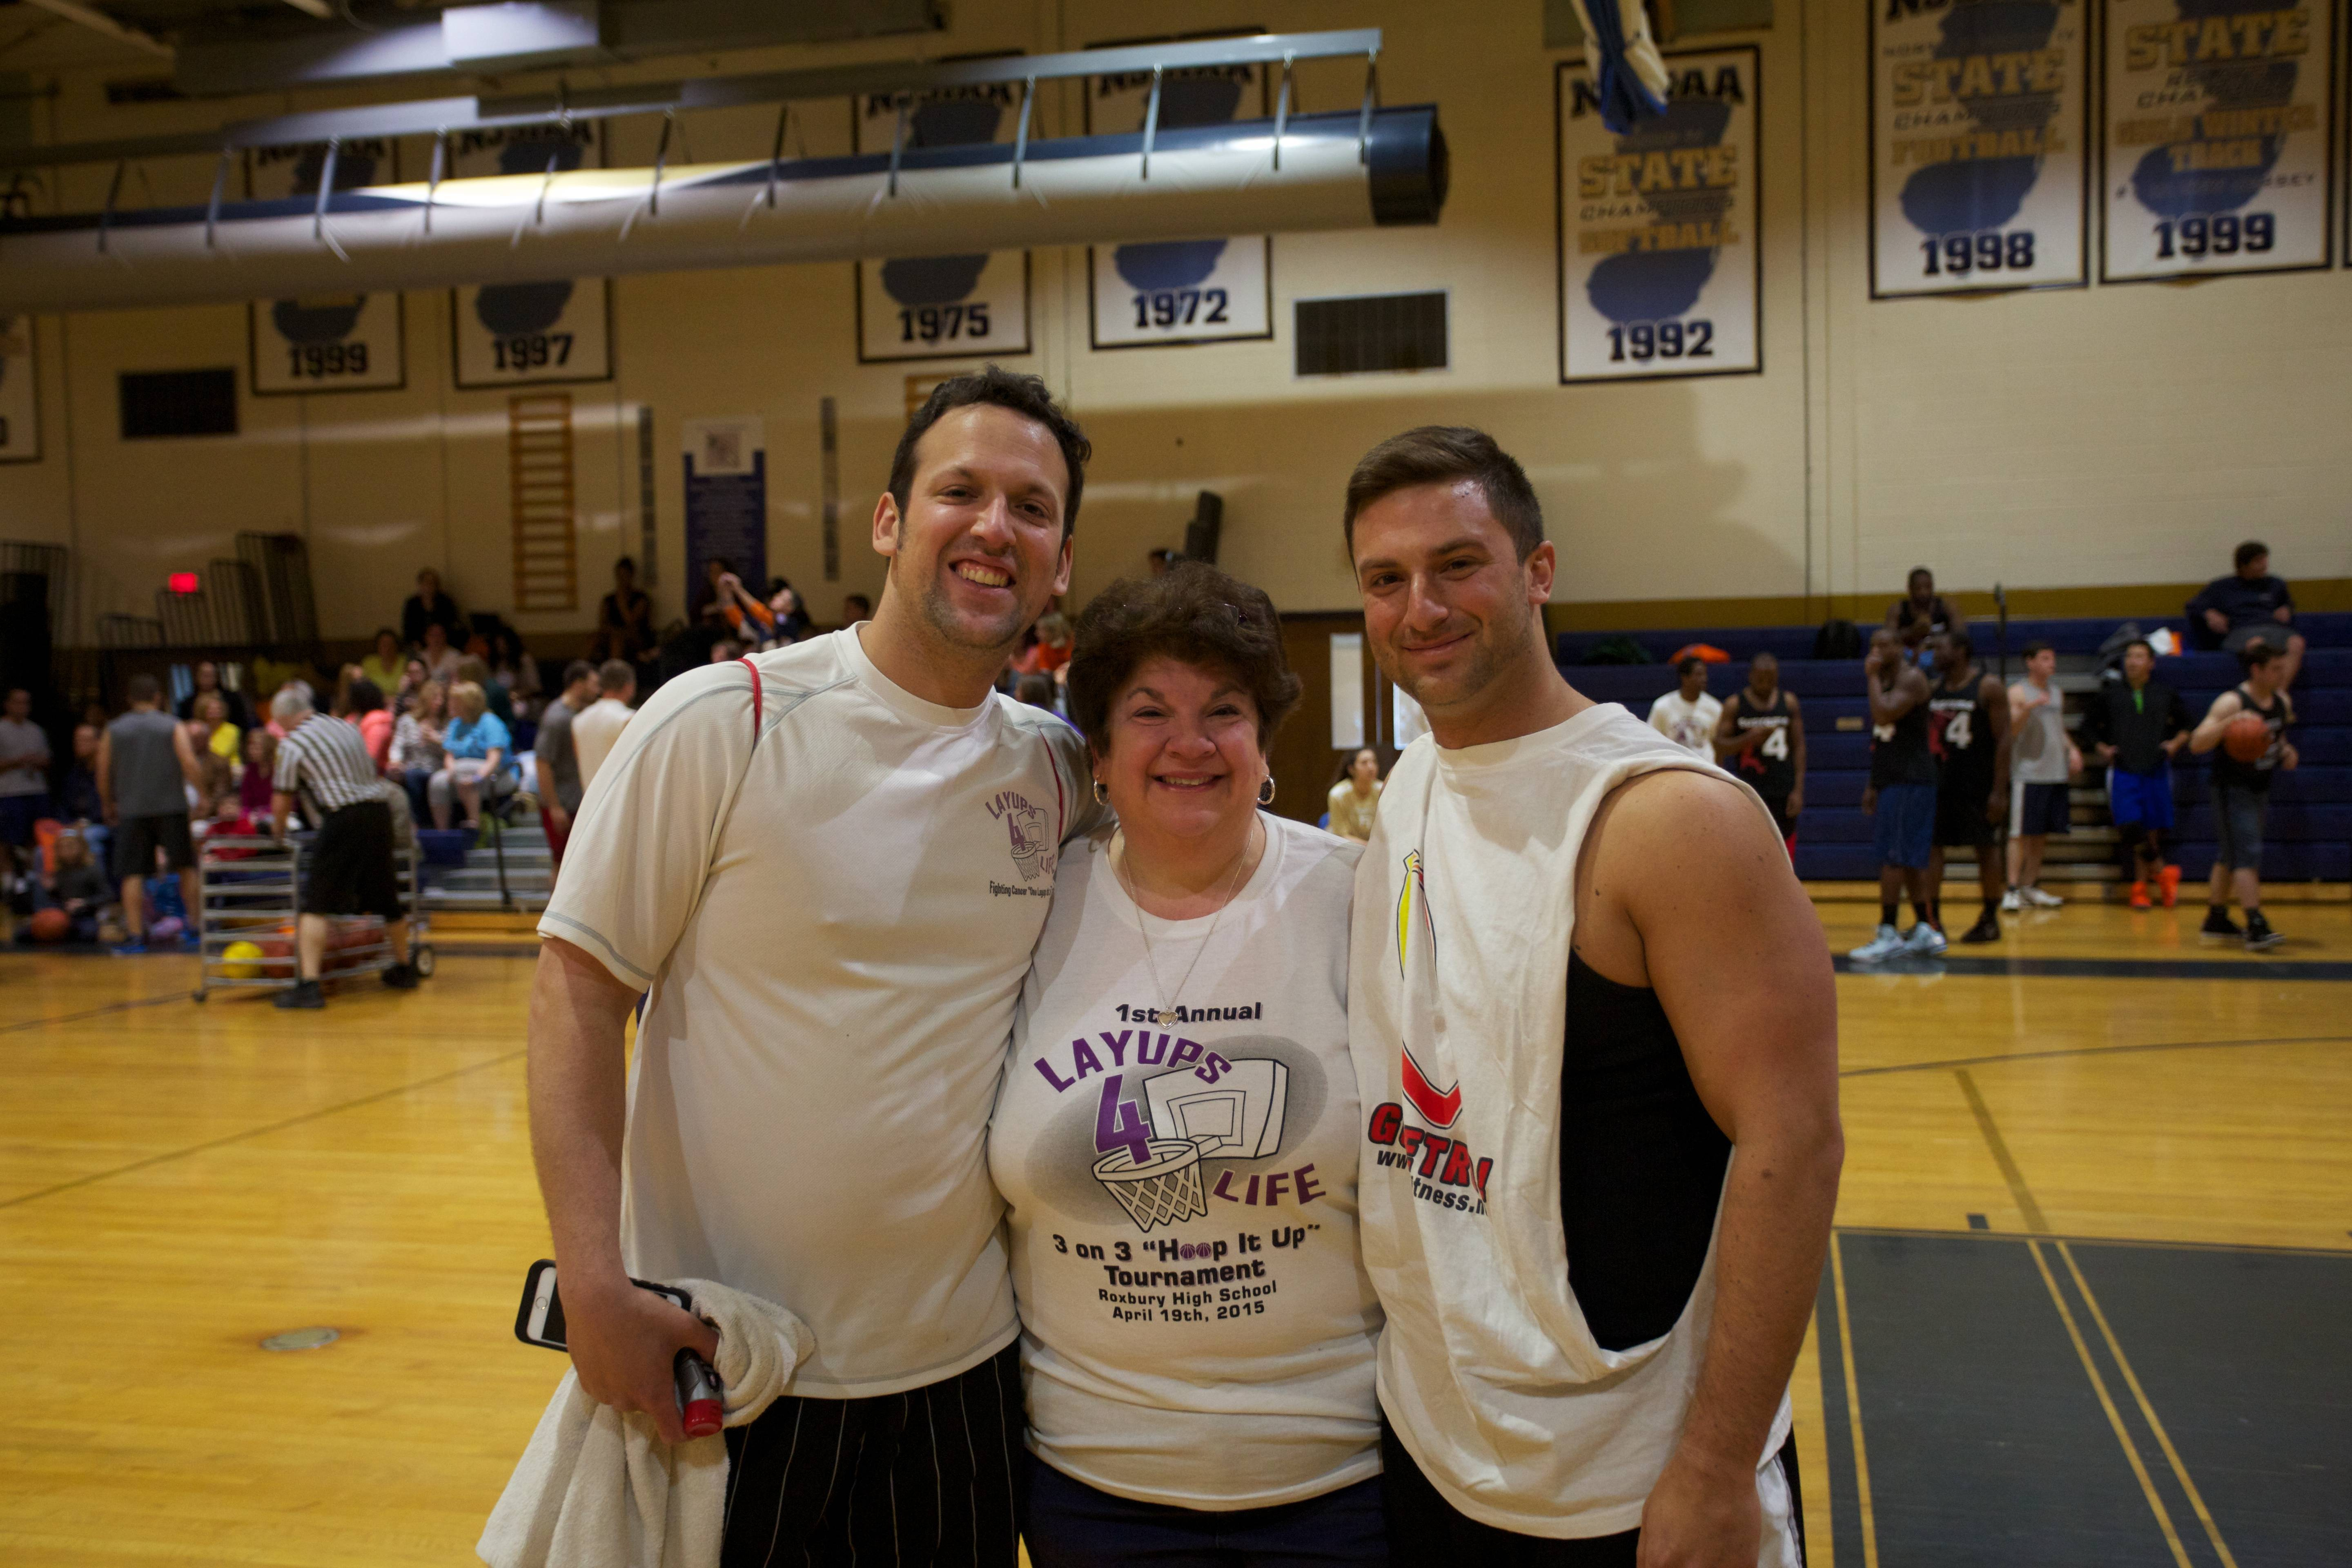 a0e5cc5697ef2ec35c72_dan_and_mom_and_brother.jpg